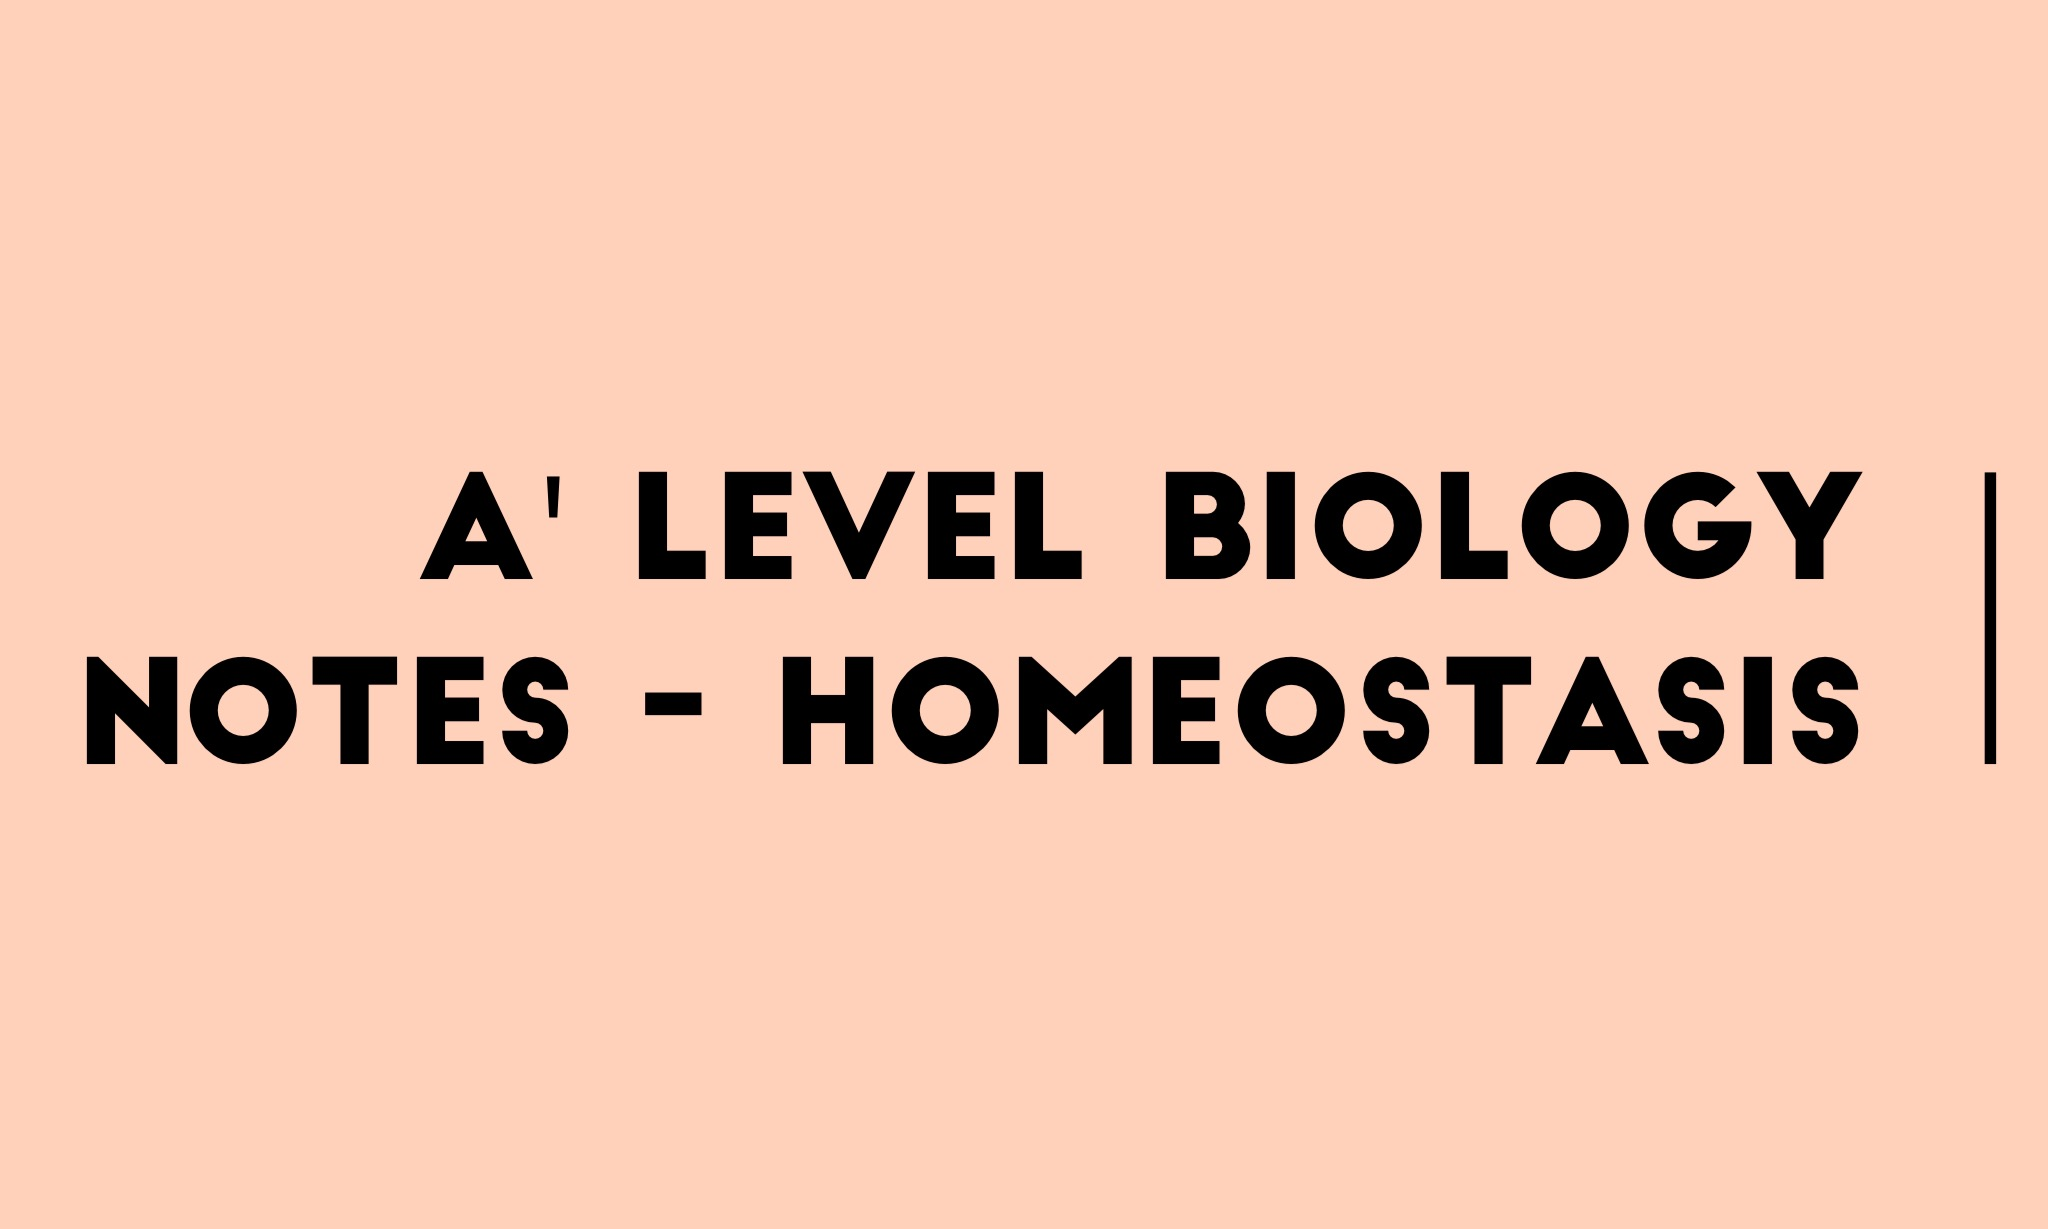 A' Level Biology (9700) Notes – Homeostasis – Stude Mate